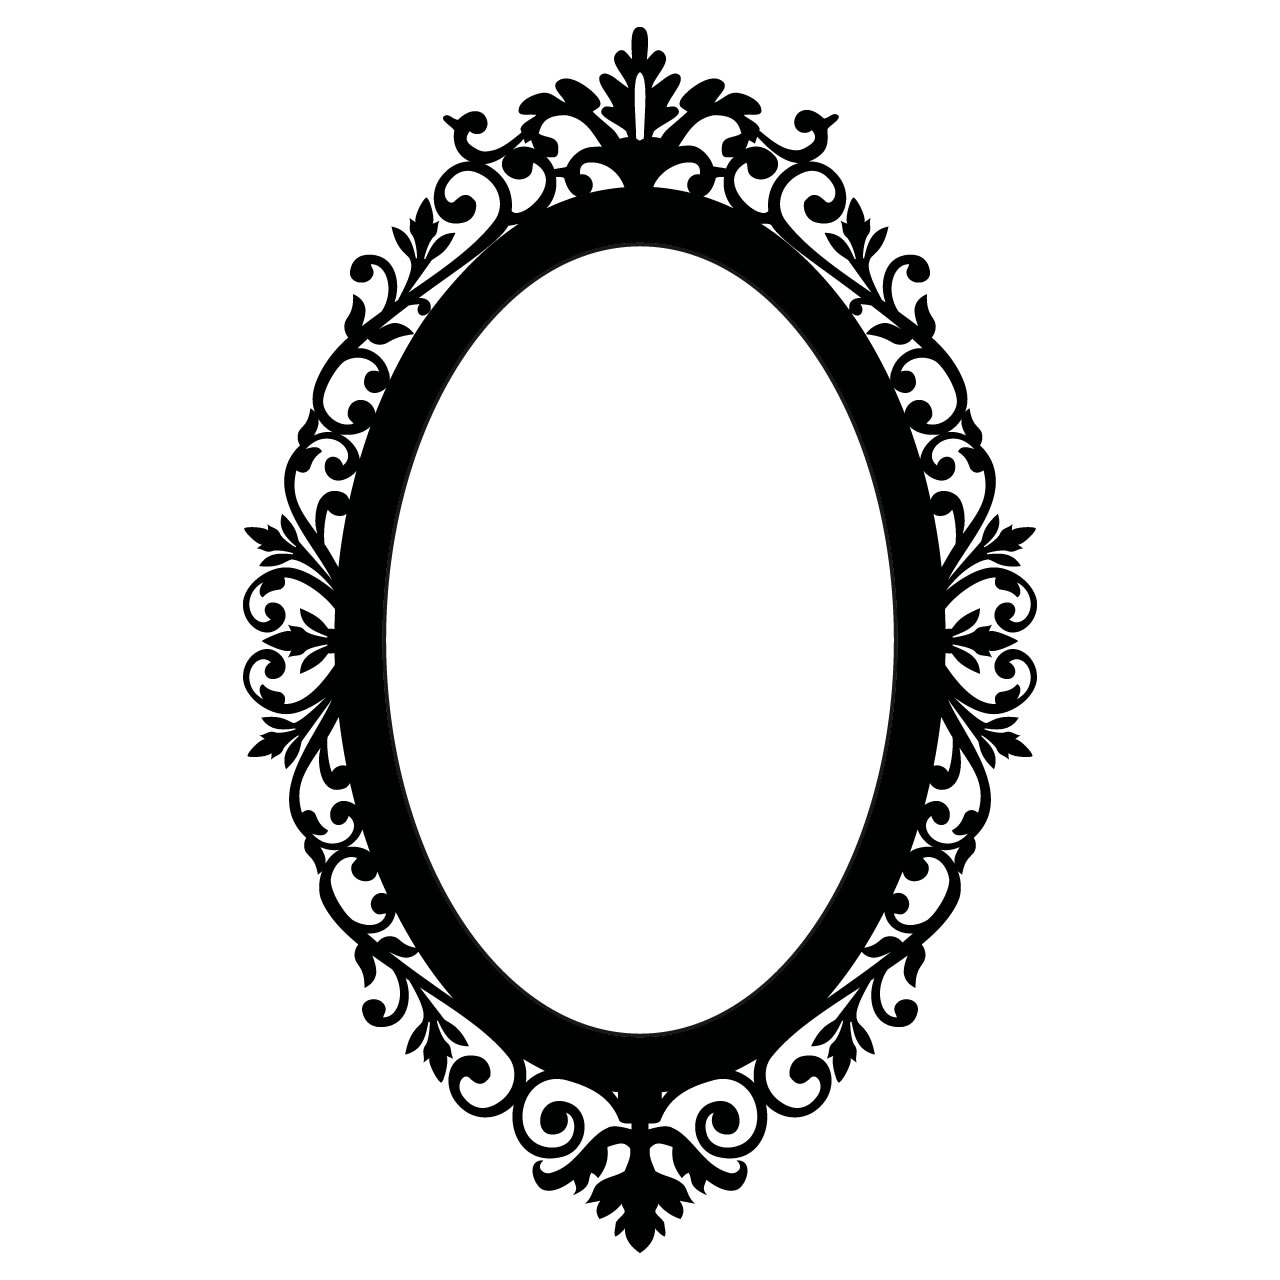 Antique Frame Drawing at GetDrawings.com   Free for personal use ...